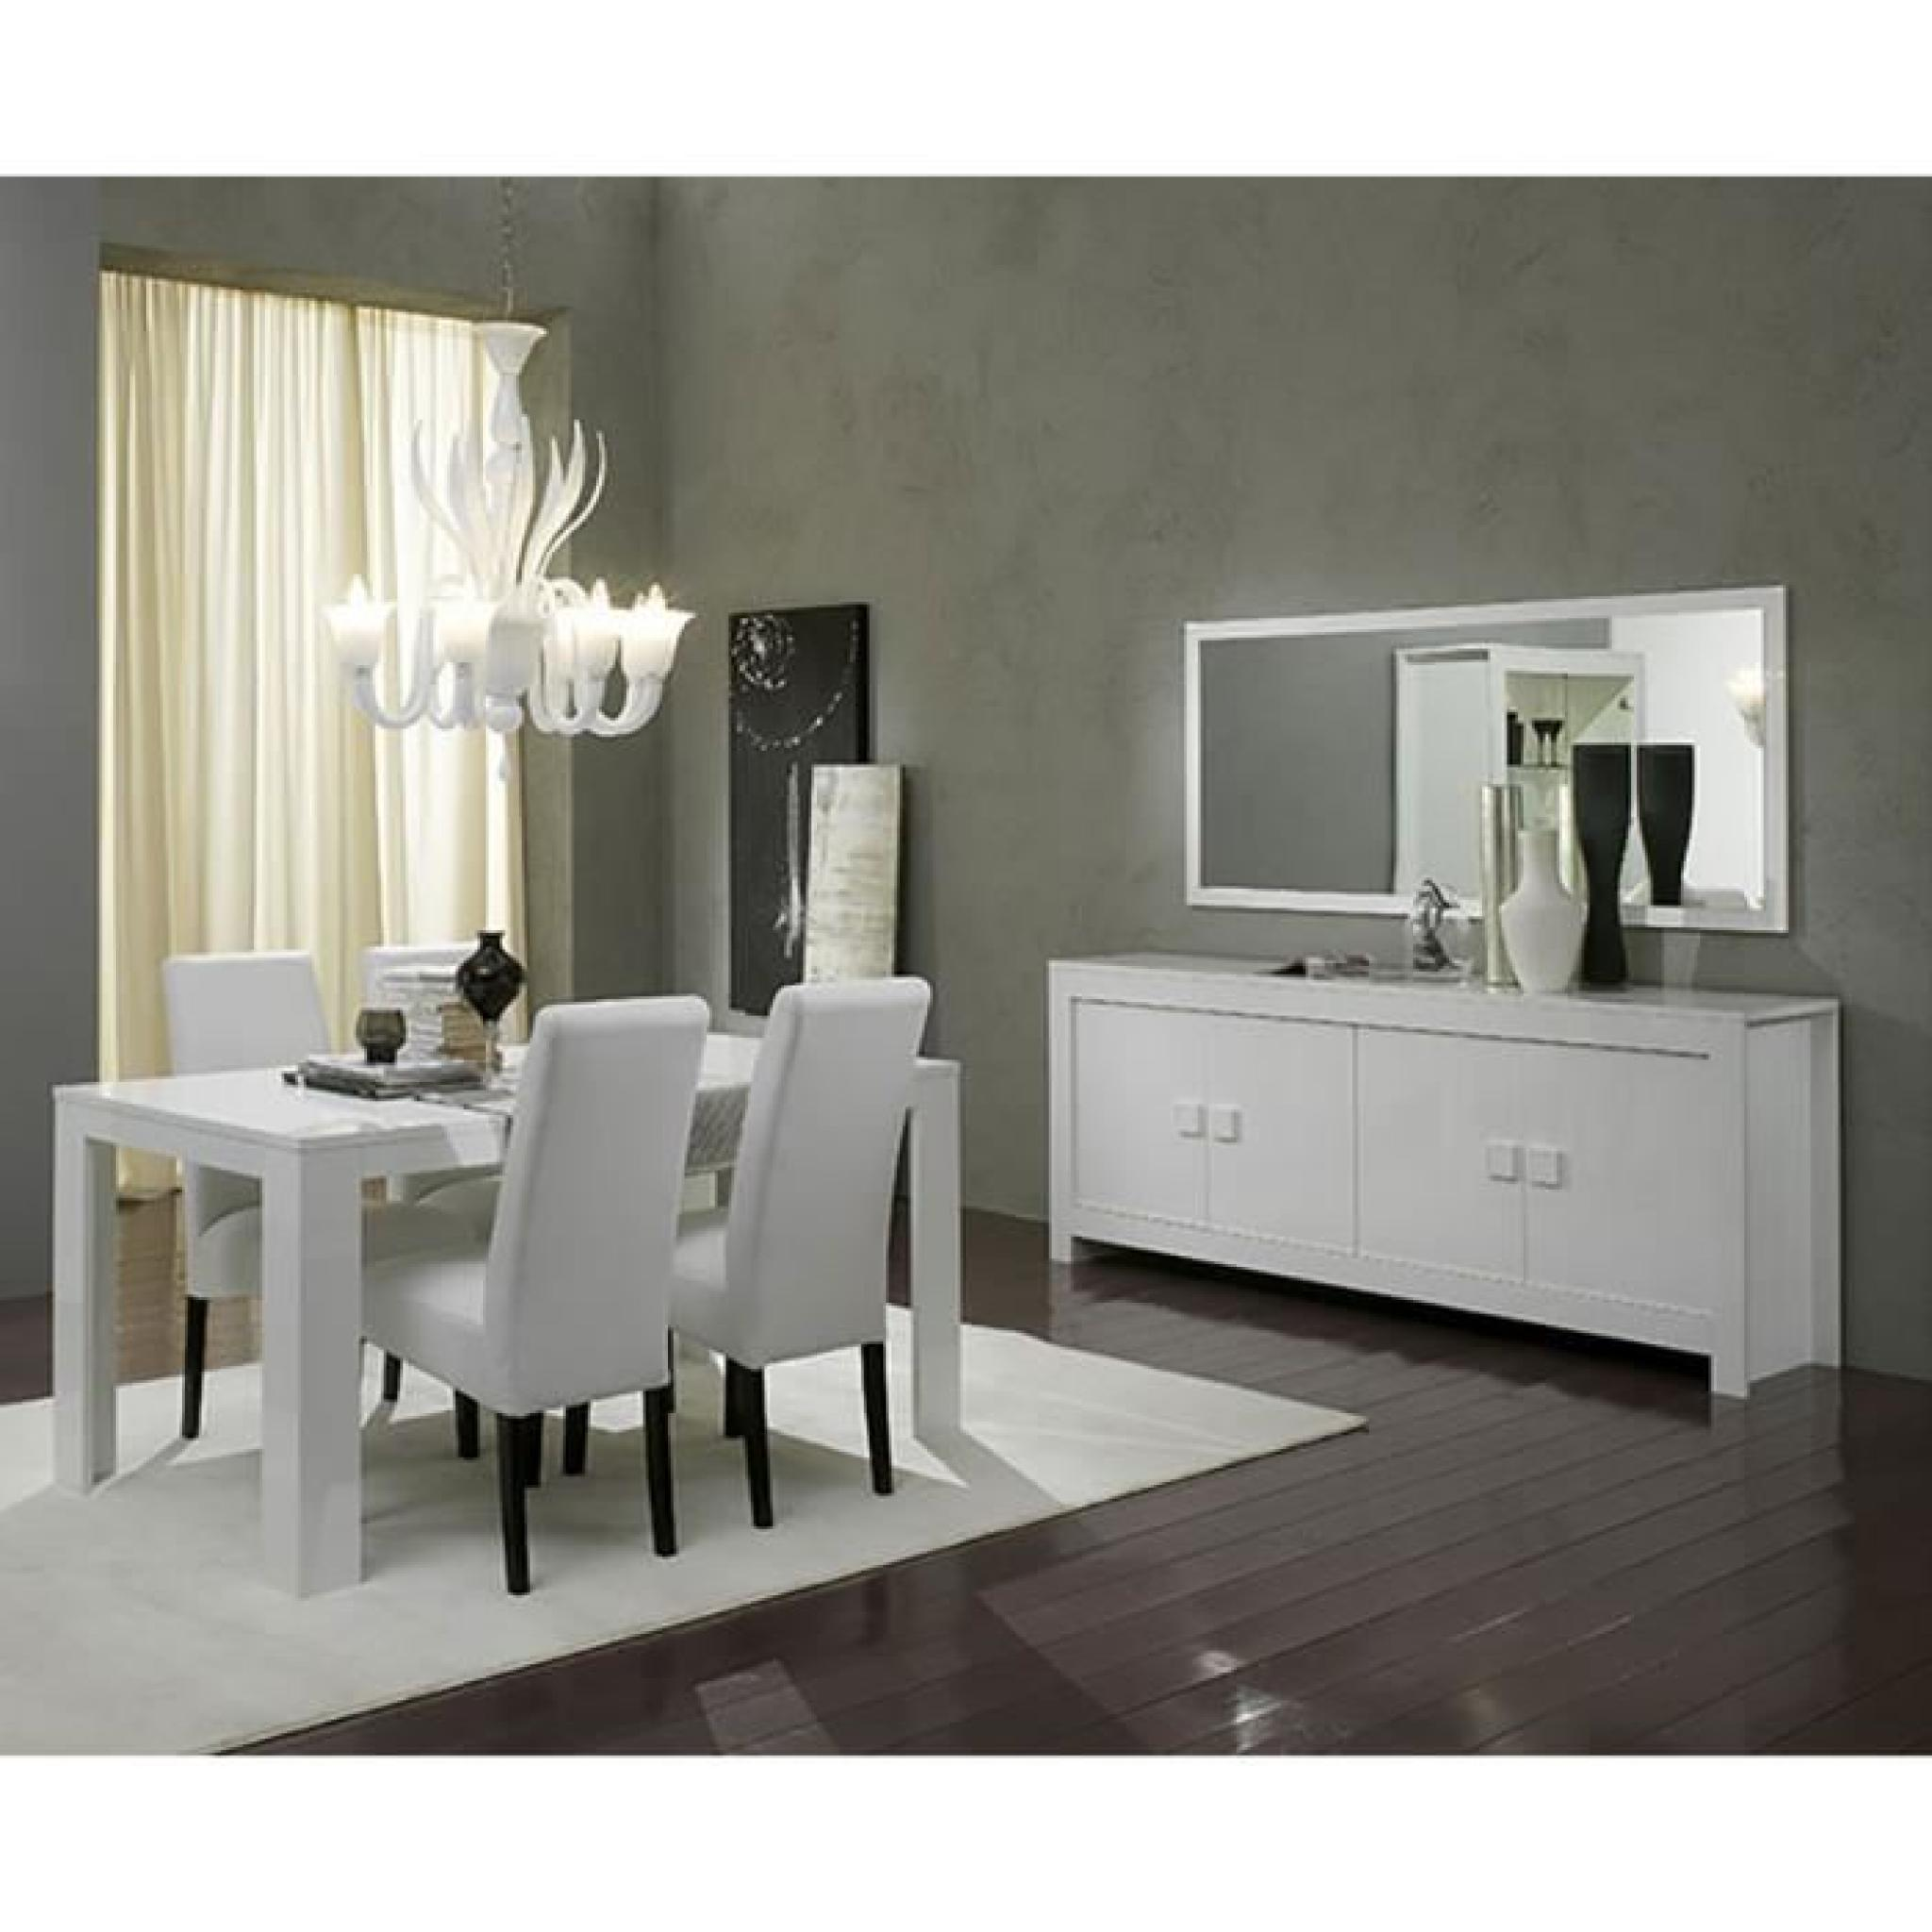 salle manger compl te blanc laqu design tamara 2. Black Bedroom Furniture Sets. Home Design Ideas